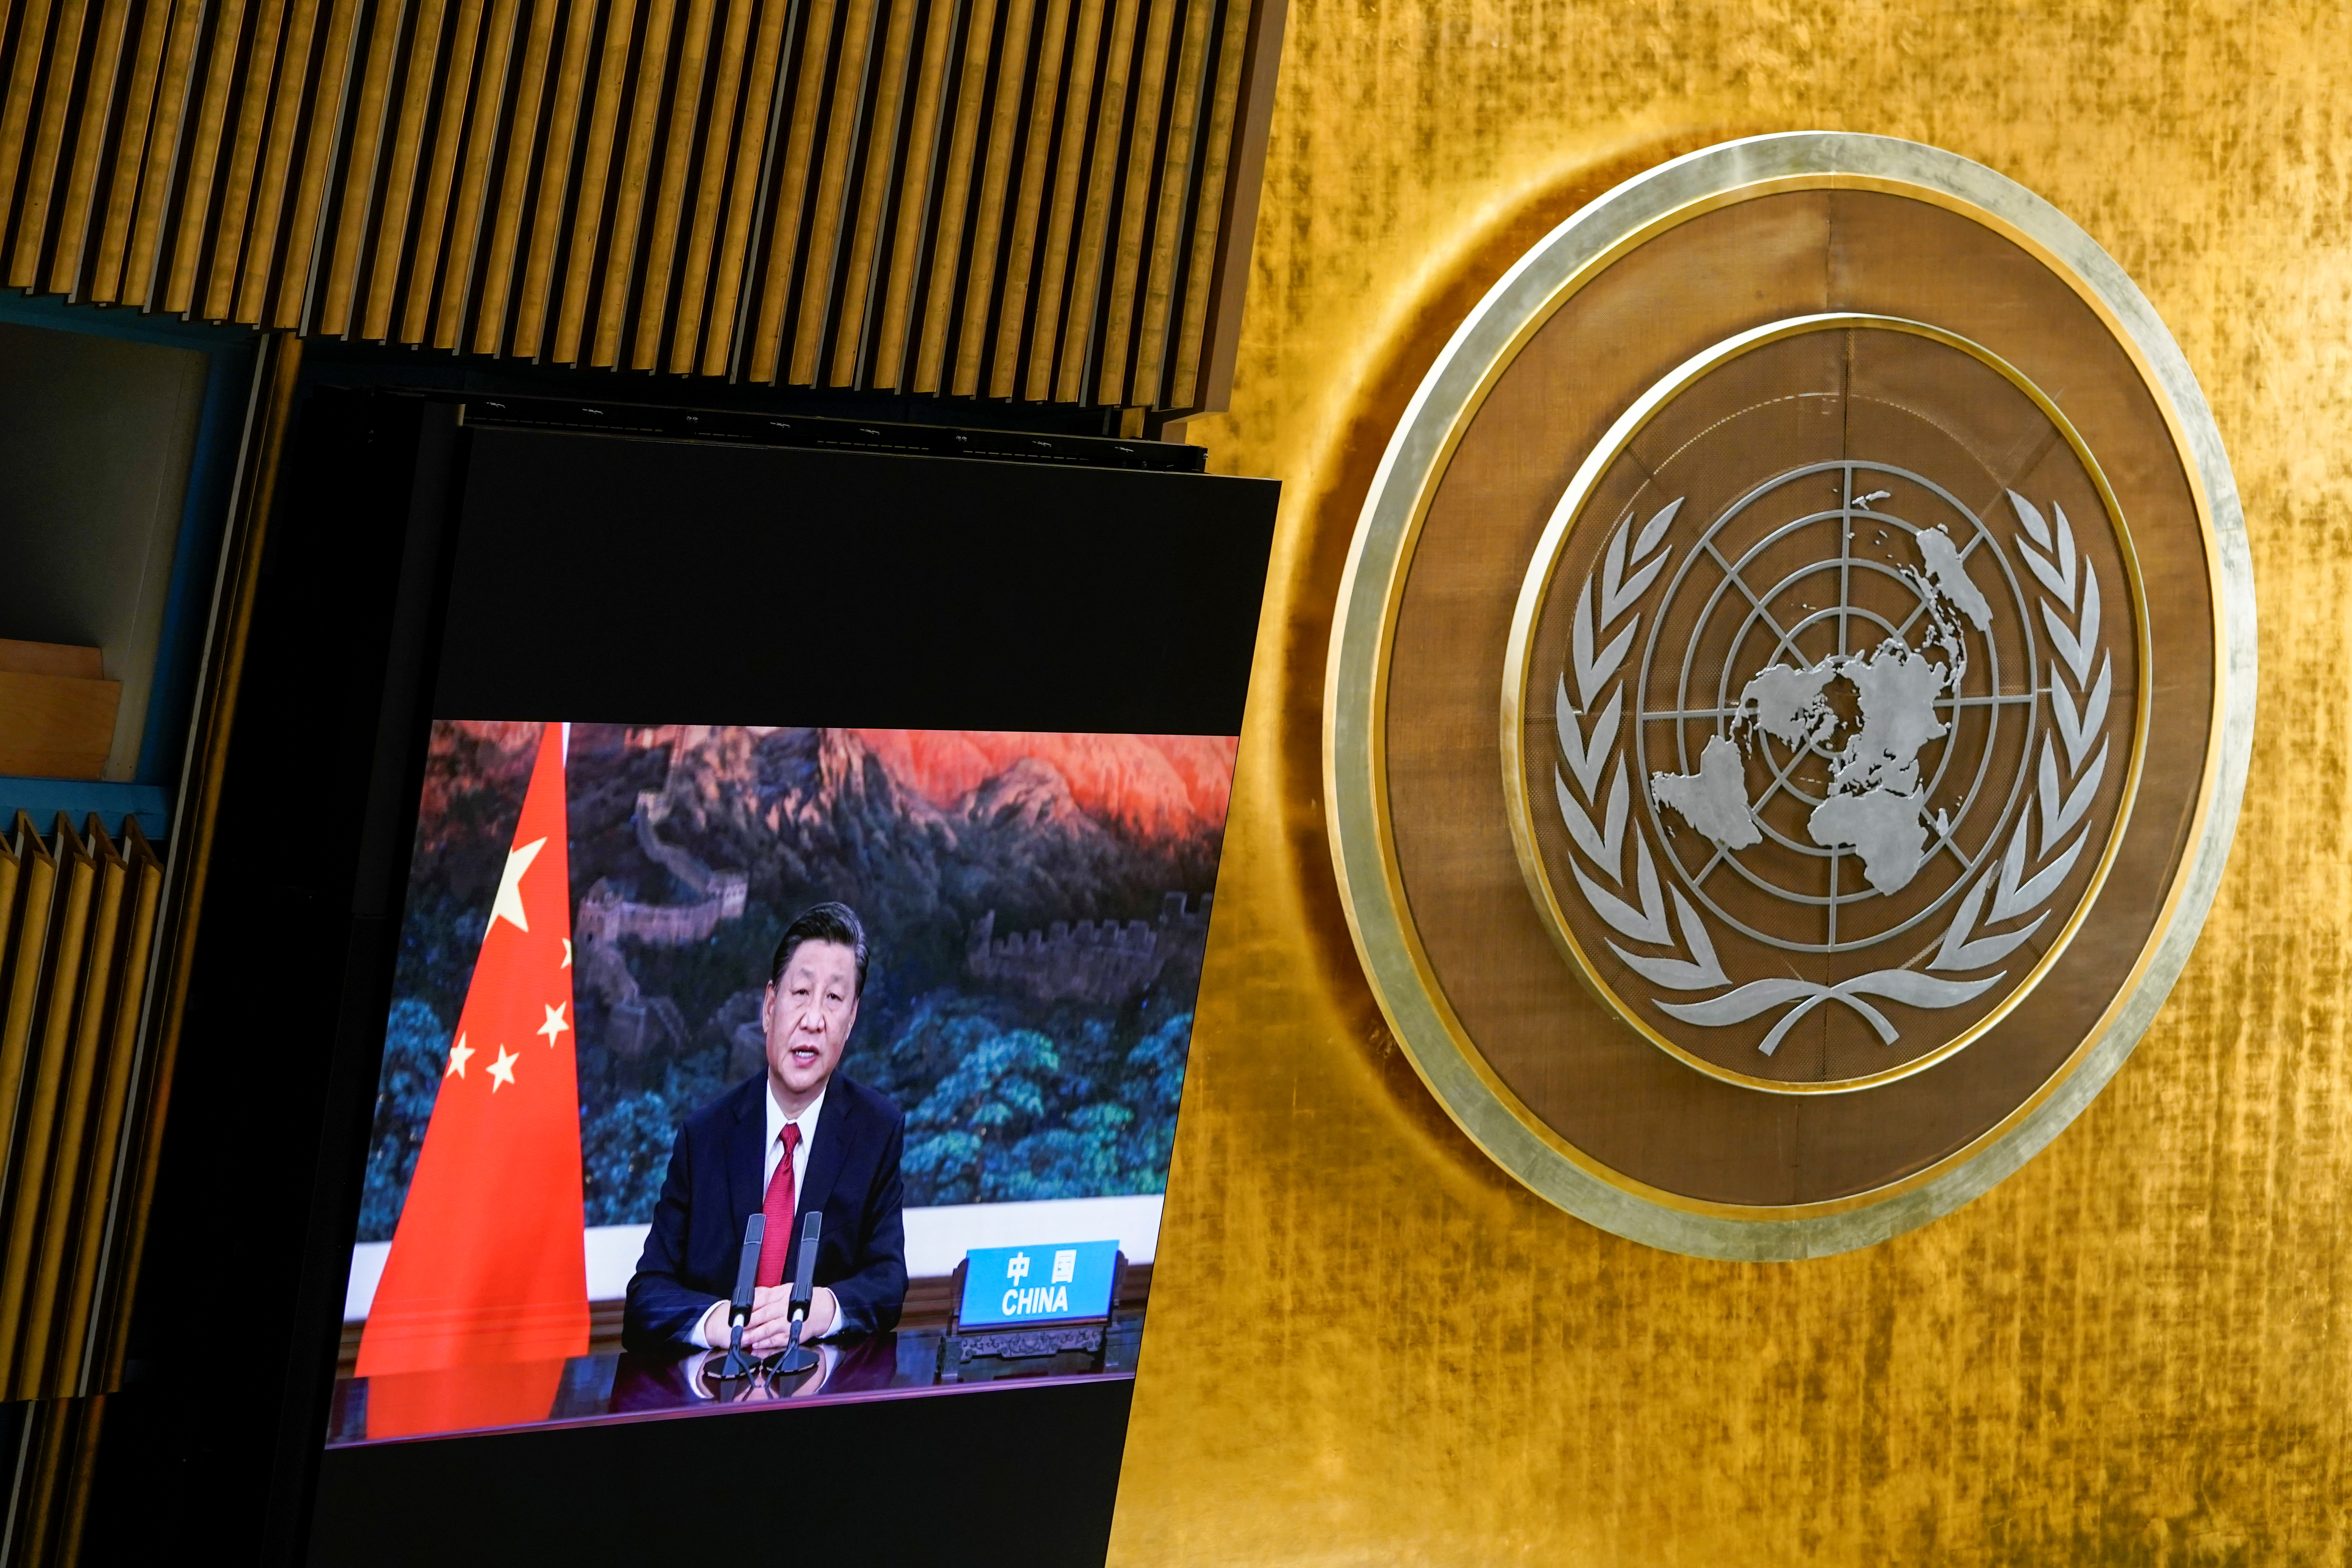 Chinese President Xi Jinping speaks remotely during the 76th Session of the General Assembly at UN Headquarters in New York on September 21, 2021.